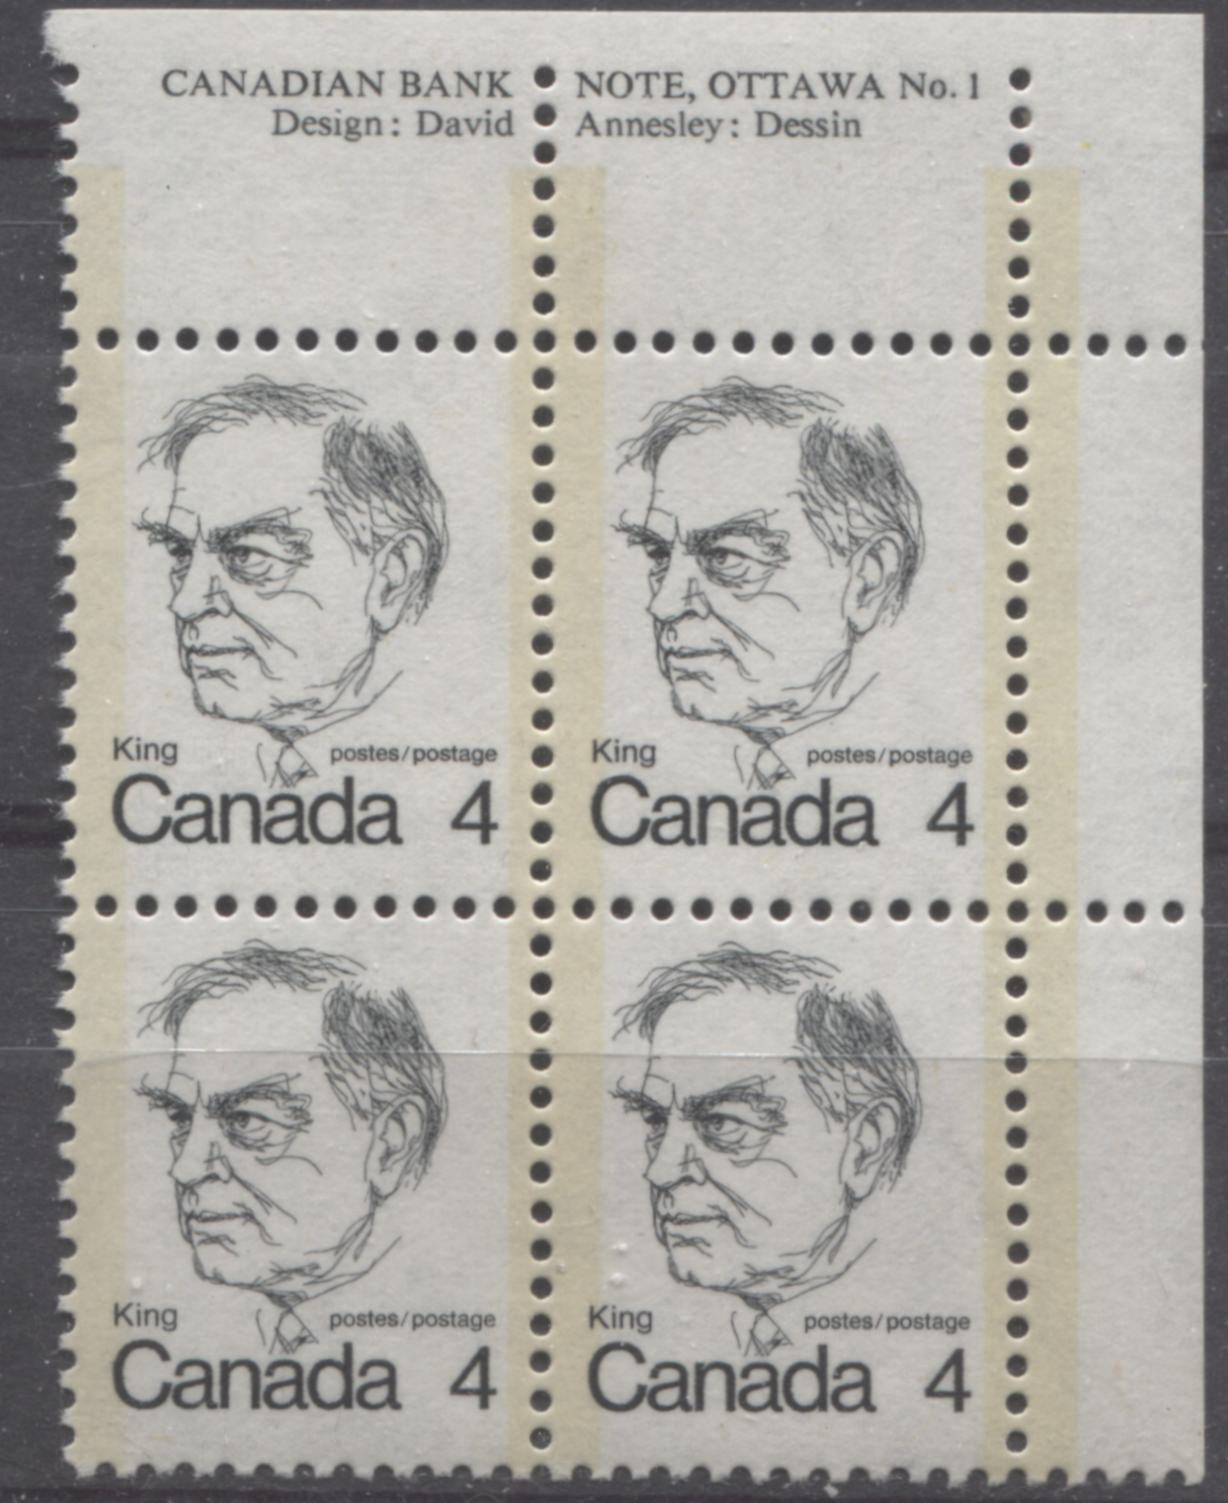 The Perforations on the 1972-1978 Caricature Issue